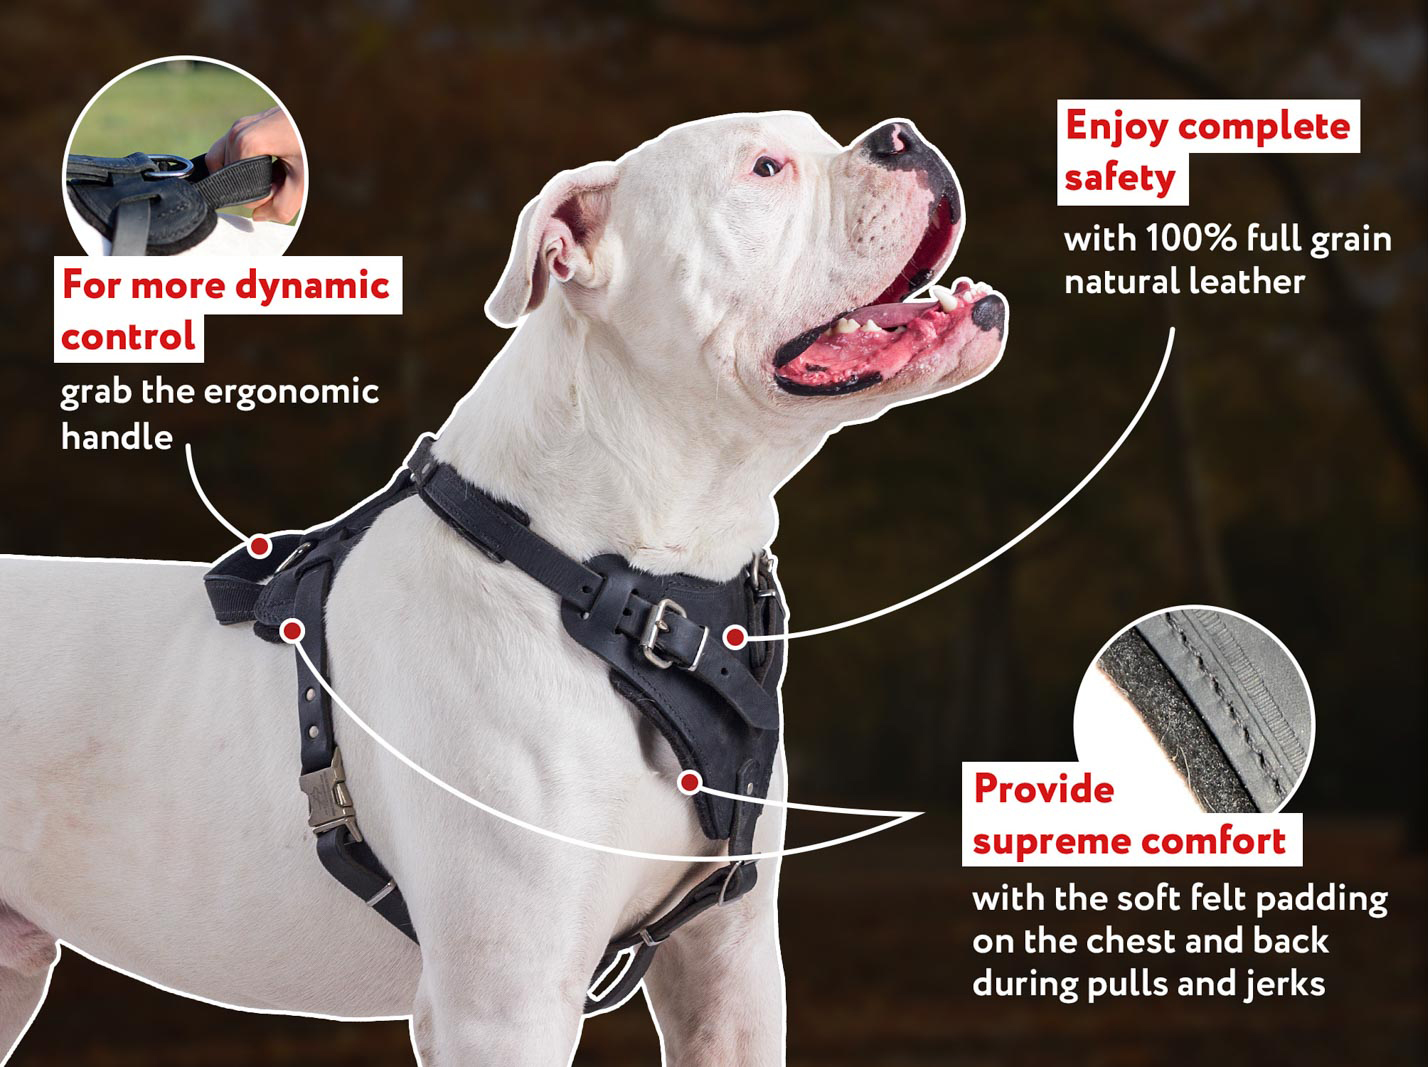 Best Training Agitation / Protection Leather Dog Harness for Large Breeds